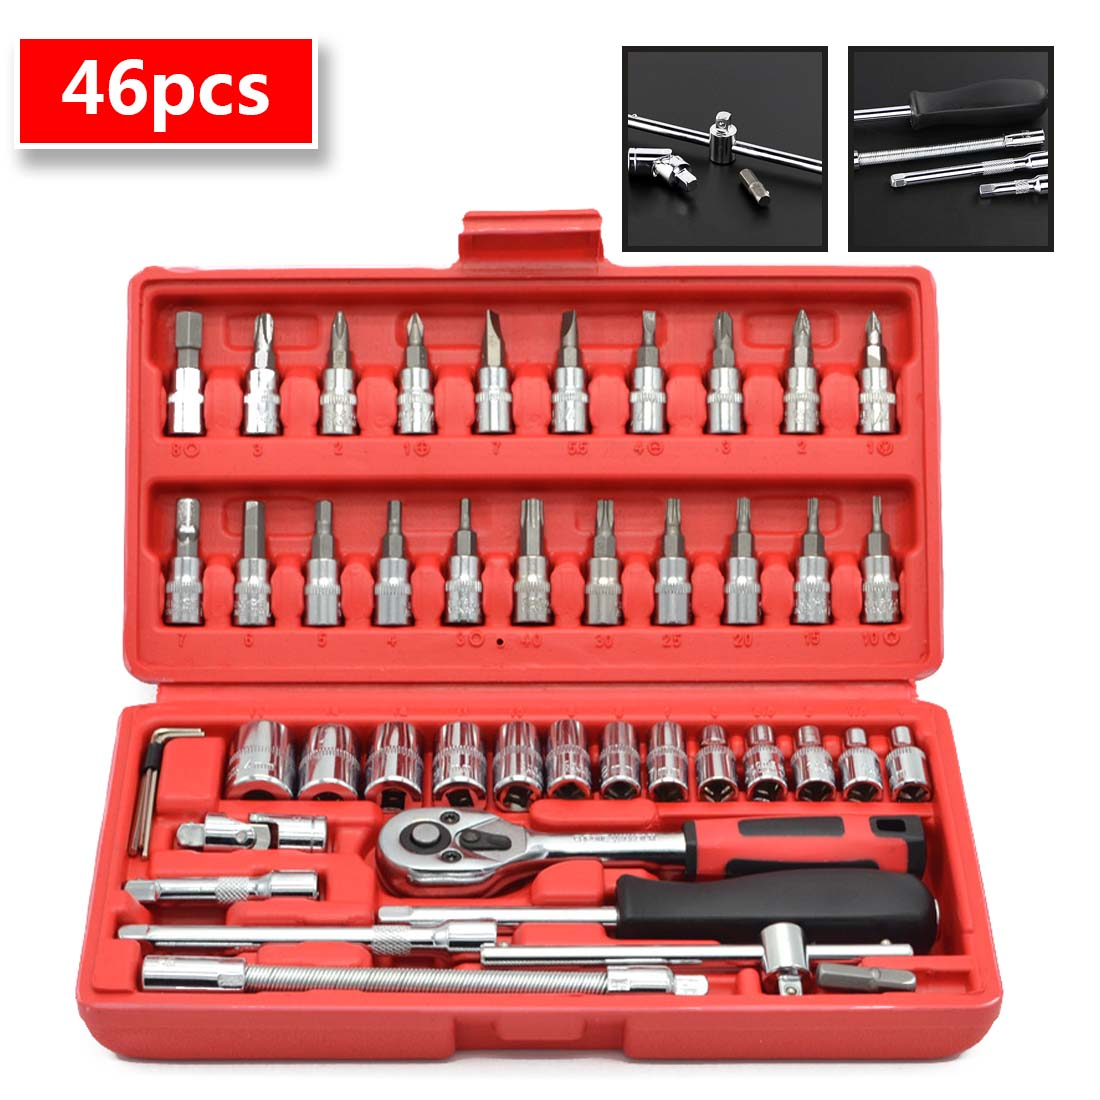 46pcs 1/4-Inch Socket Set Car Repair Tool Ratchet Set Torque Wrench Combination Bit Set Of Keys Chrome Vanadium